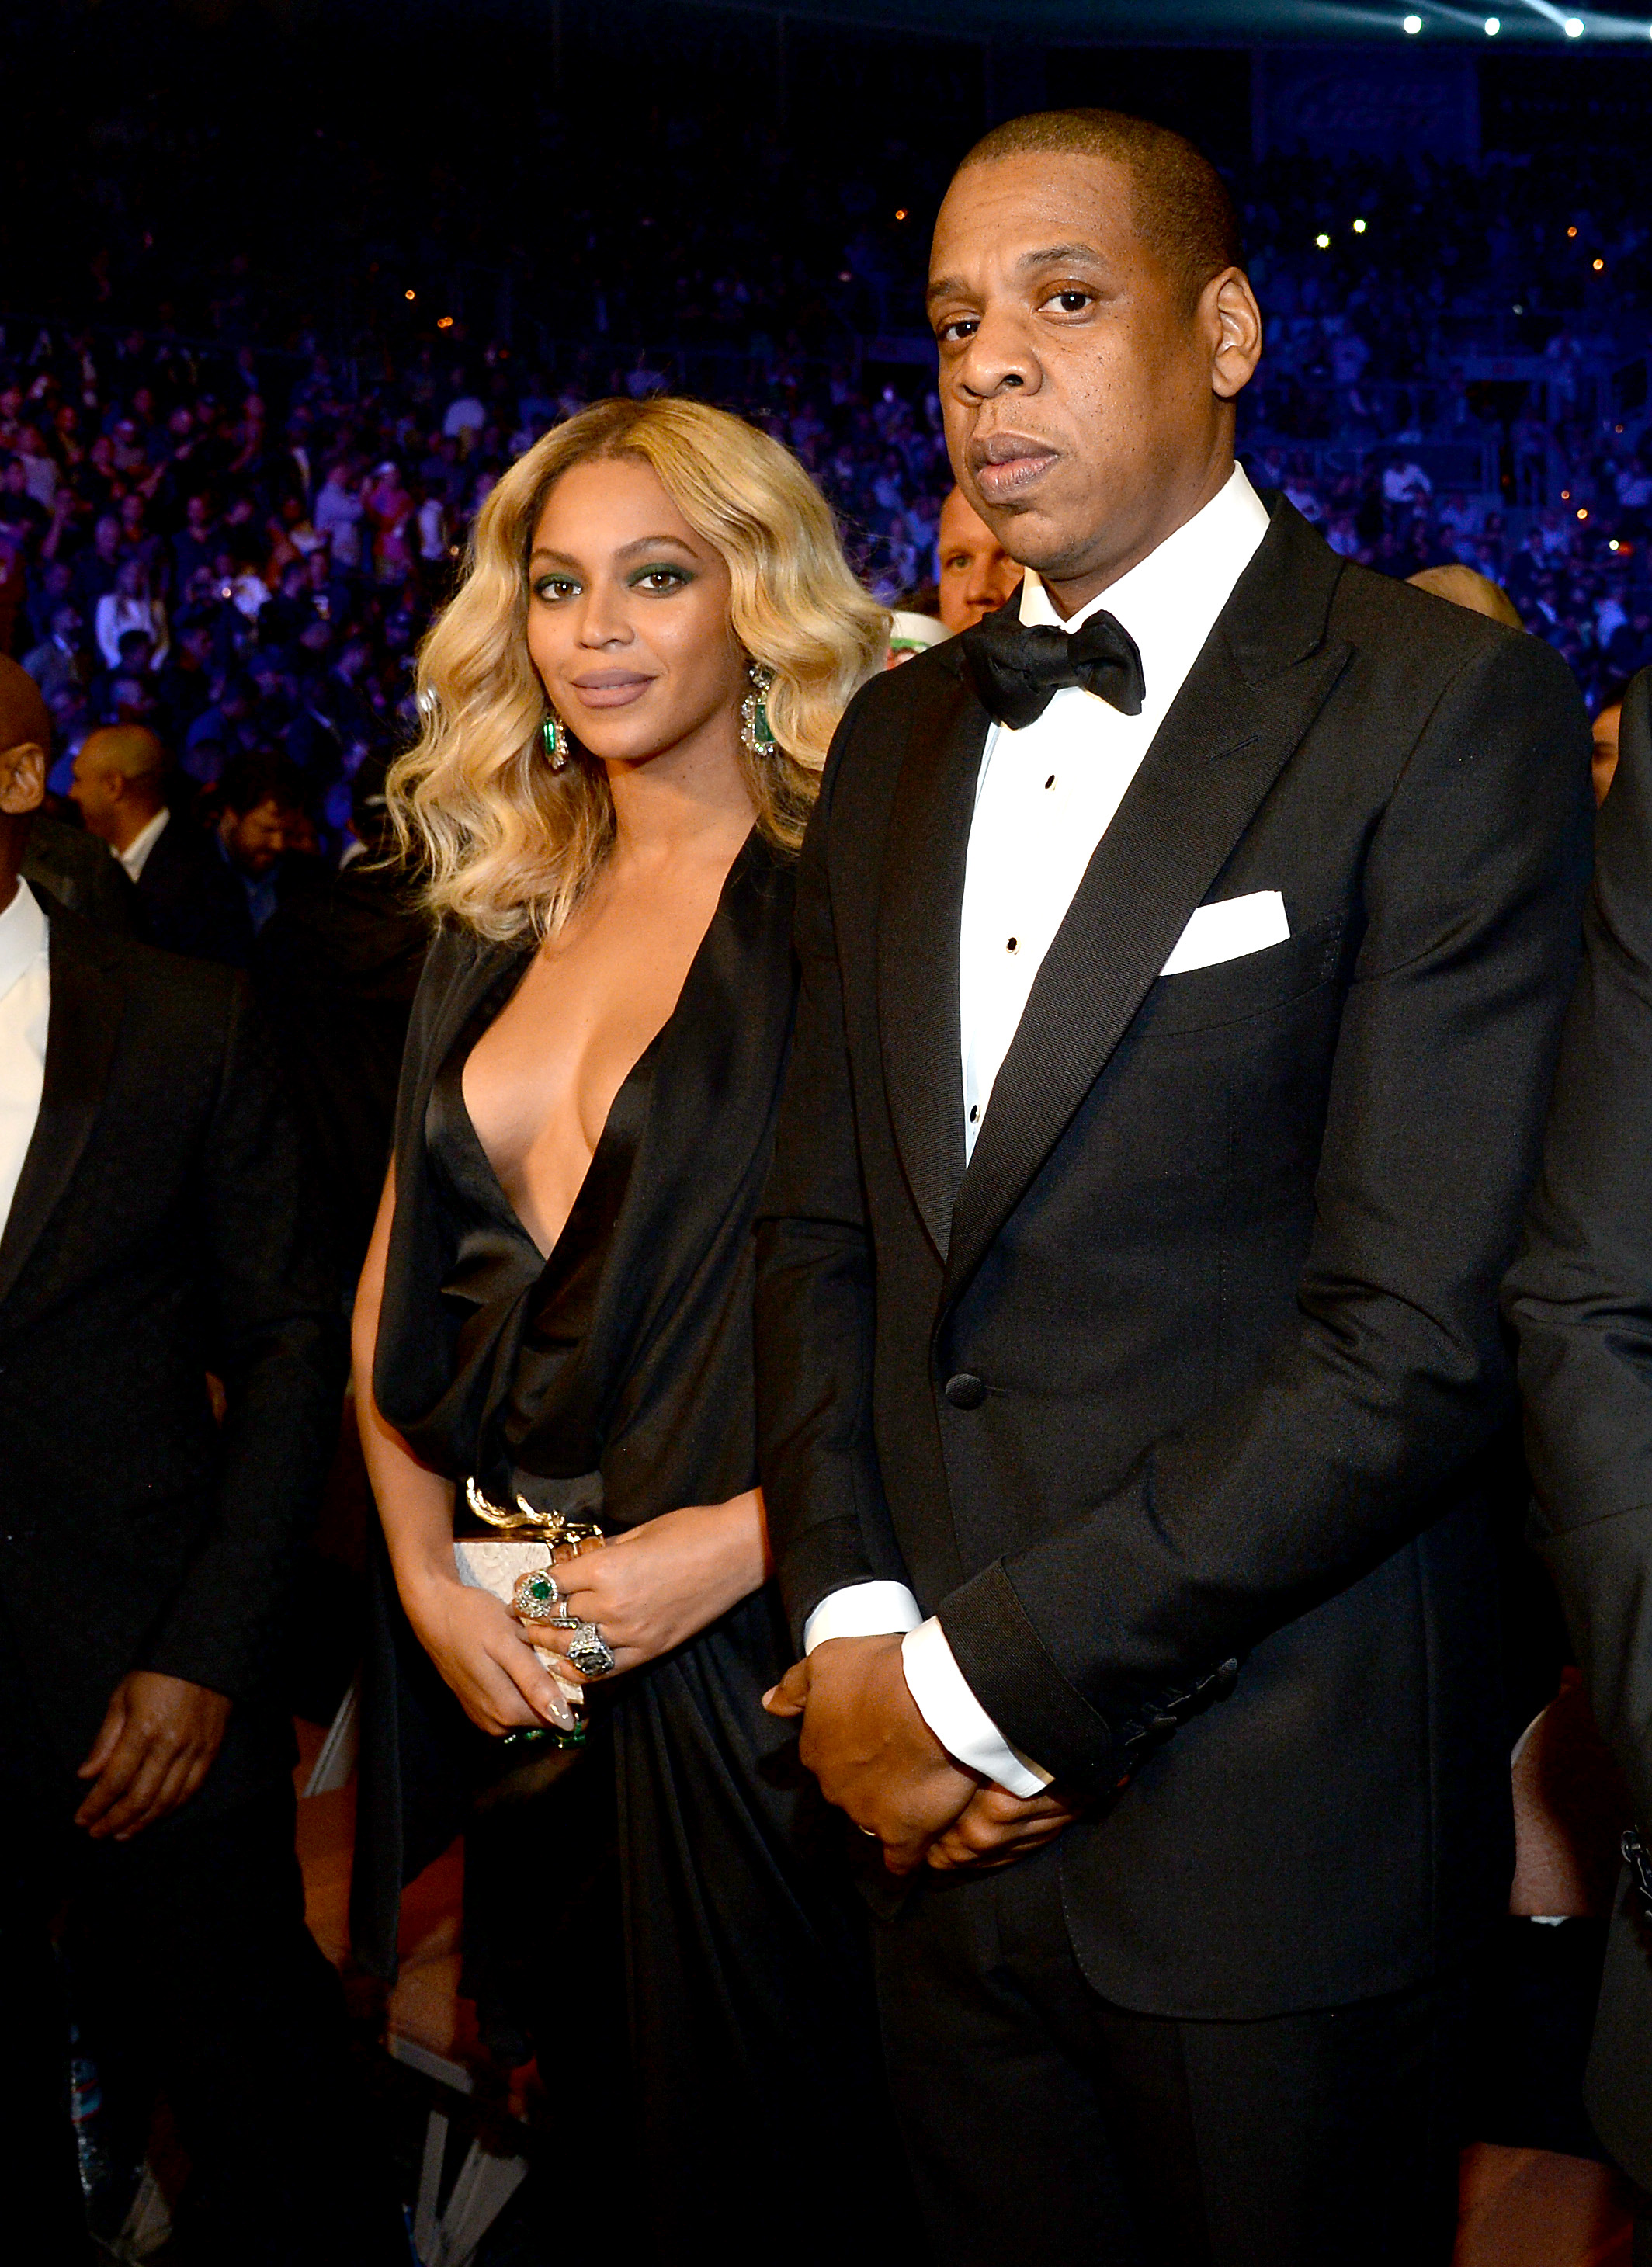 Beyonce Knowles and Jay-Z attend Miguel Cotto vs. Canelo Alvarez at the Mandalay Bay Events Center on November 21, 2015 in Las Vegas, Nevada. (Photo by Kevin Mazur/Getty Images for Roc Nation Sports)